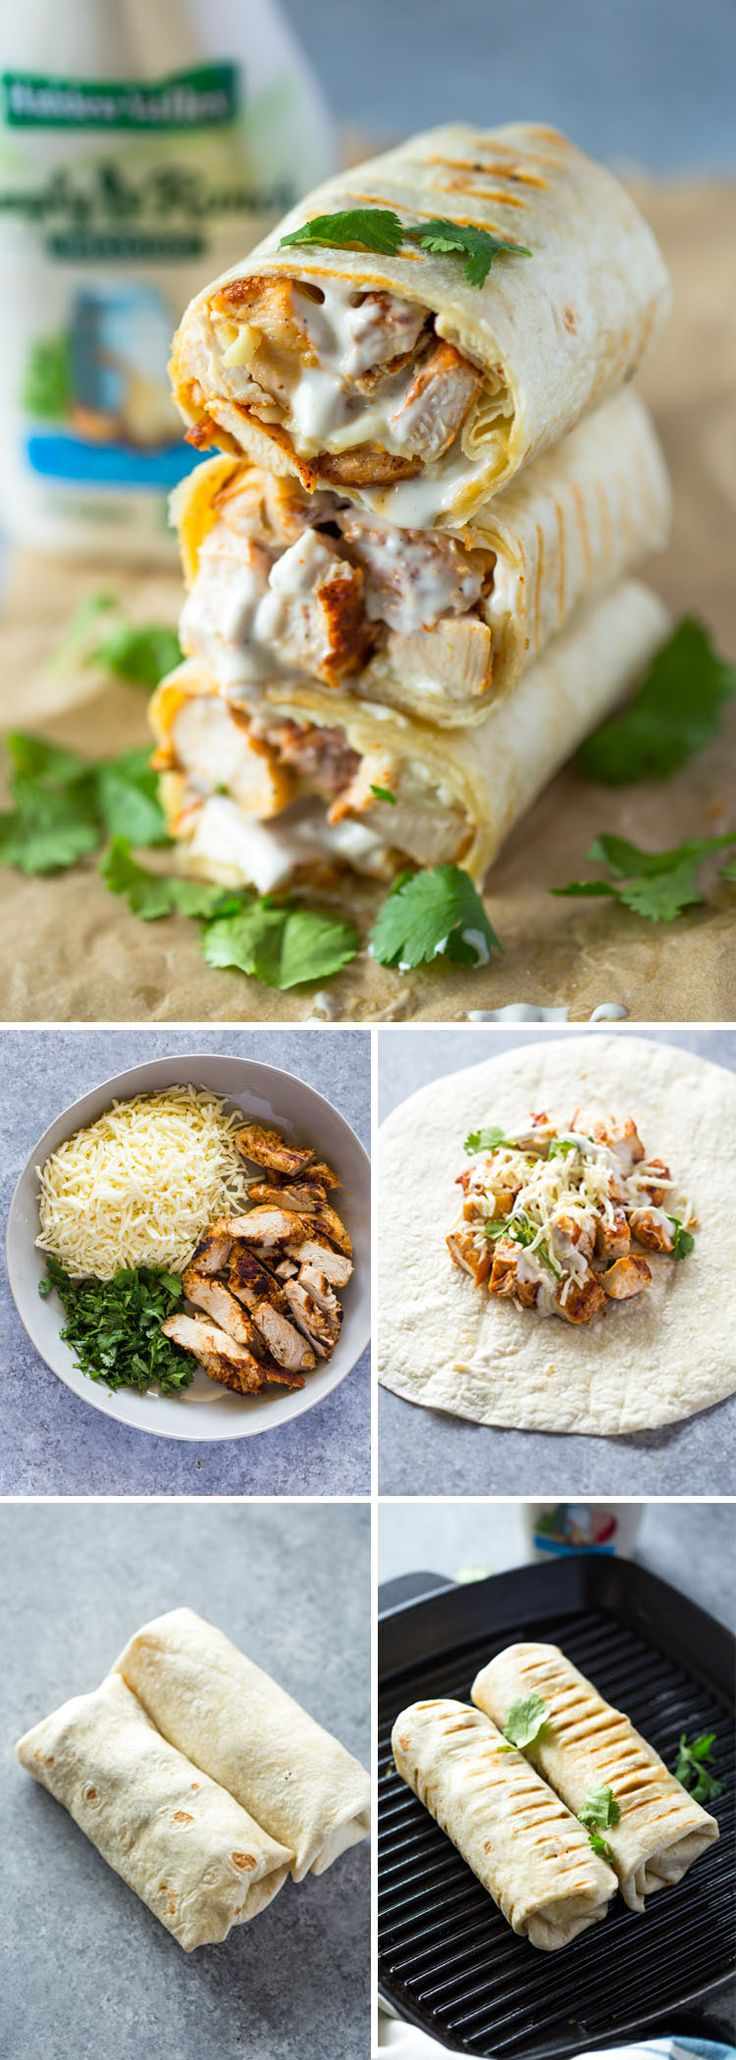 Chicken Ranch Wraps ~      Lay tortillas on clean flat surface. Place about ½ cup chicken, 1 Tbsp ranch, 2 Tbsp of mozzarella, & 1 Tbsp minced cilantro (spinach) on each tortilla. Fold tightly to form a burrito shape. Heat a heavy-duty pan or grill to medium heat. Coat with a light layer or oil or cooking spray & cook wraps for 1-2 minutes on each side or until the tortilla is crispy & golden. Remove from heat, slice in half & serve immediately.